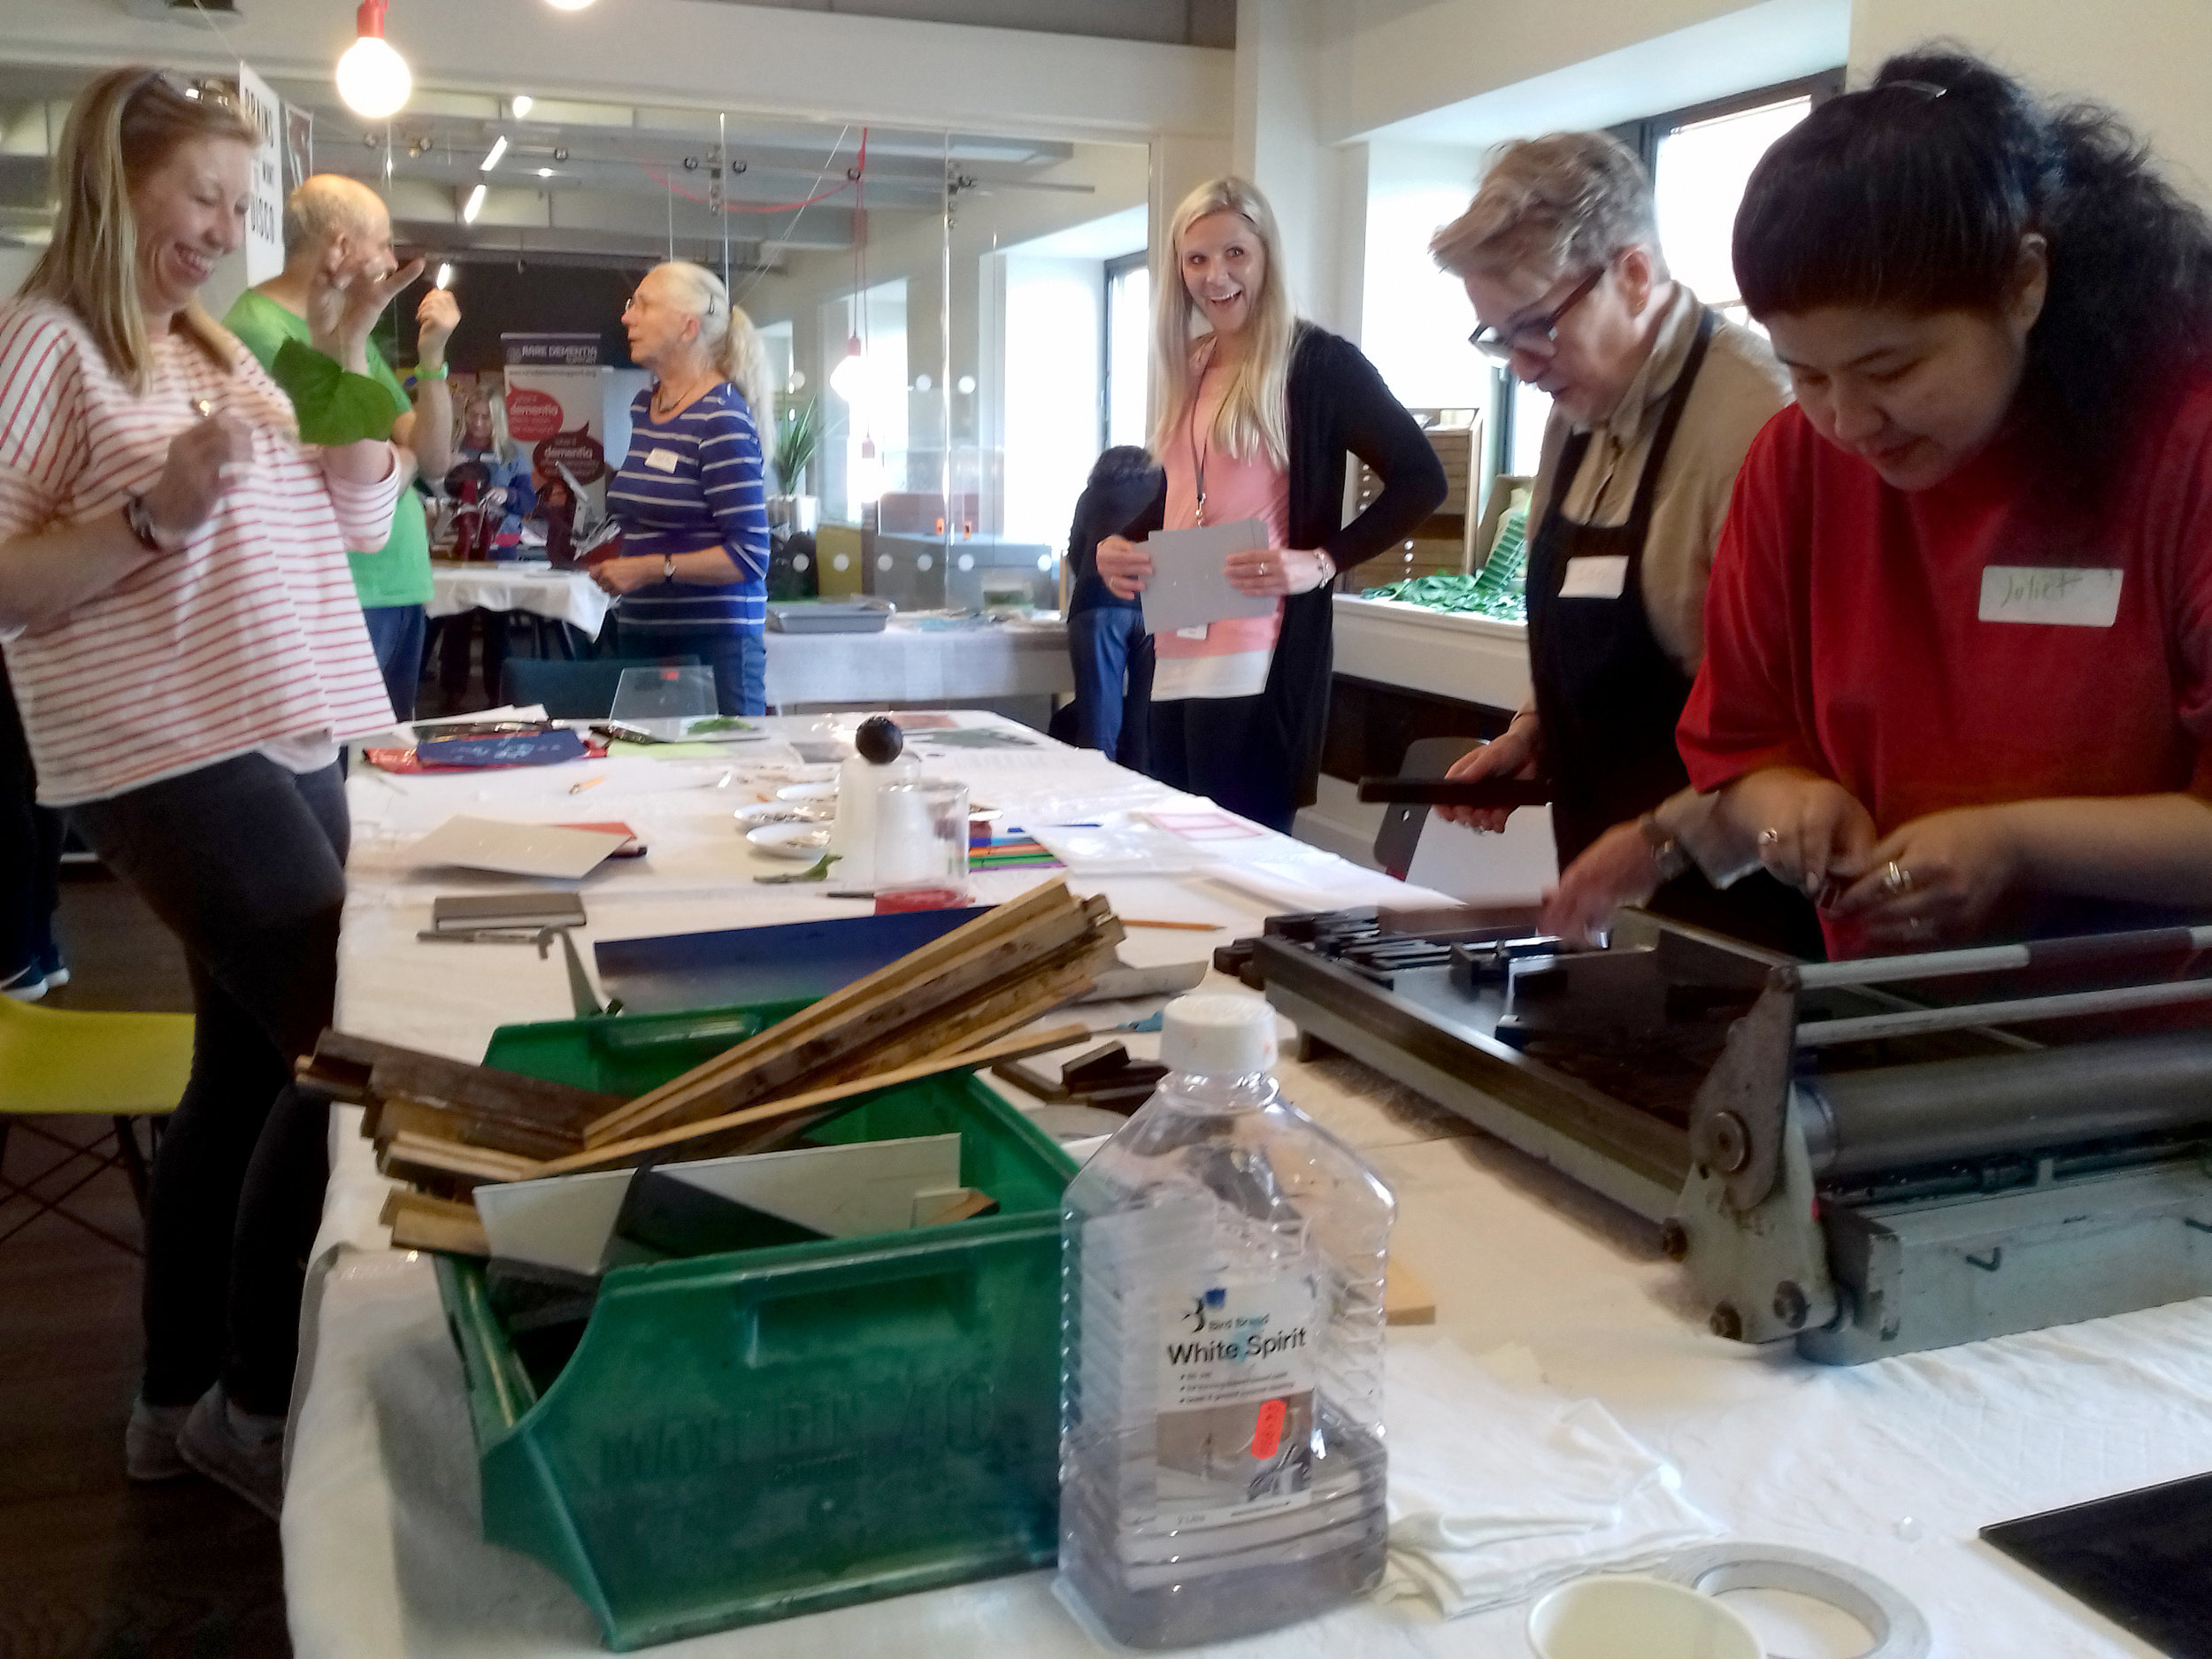 Laughing, learning and creating at the 'Words and Letters' printing workshop led by Charlie Murphy and Pixel Press.